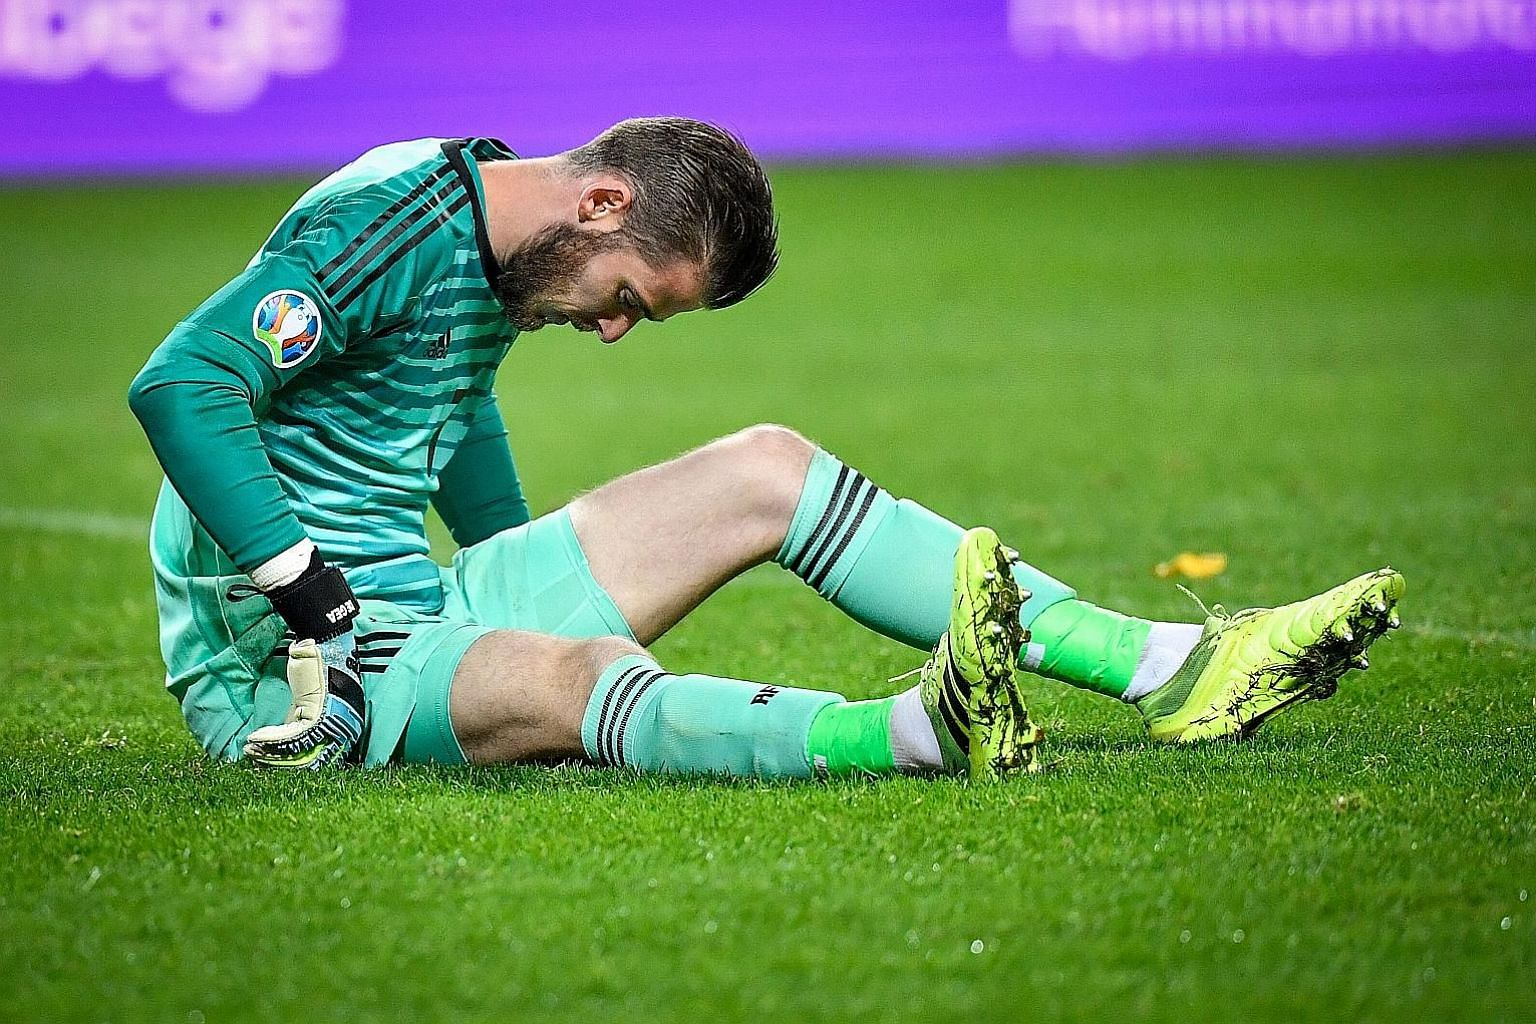 Spain goalkeeper David de Gea is injured during the 1-1 Euro 2020 qualifying draw with Sweden on Tuesday. The result meant that Spain have qualified. PHOTO: AGENCE FRANCE-PRESSE